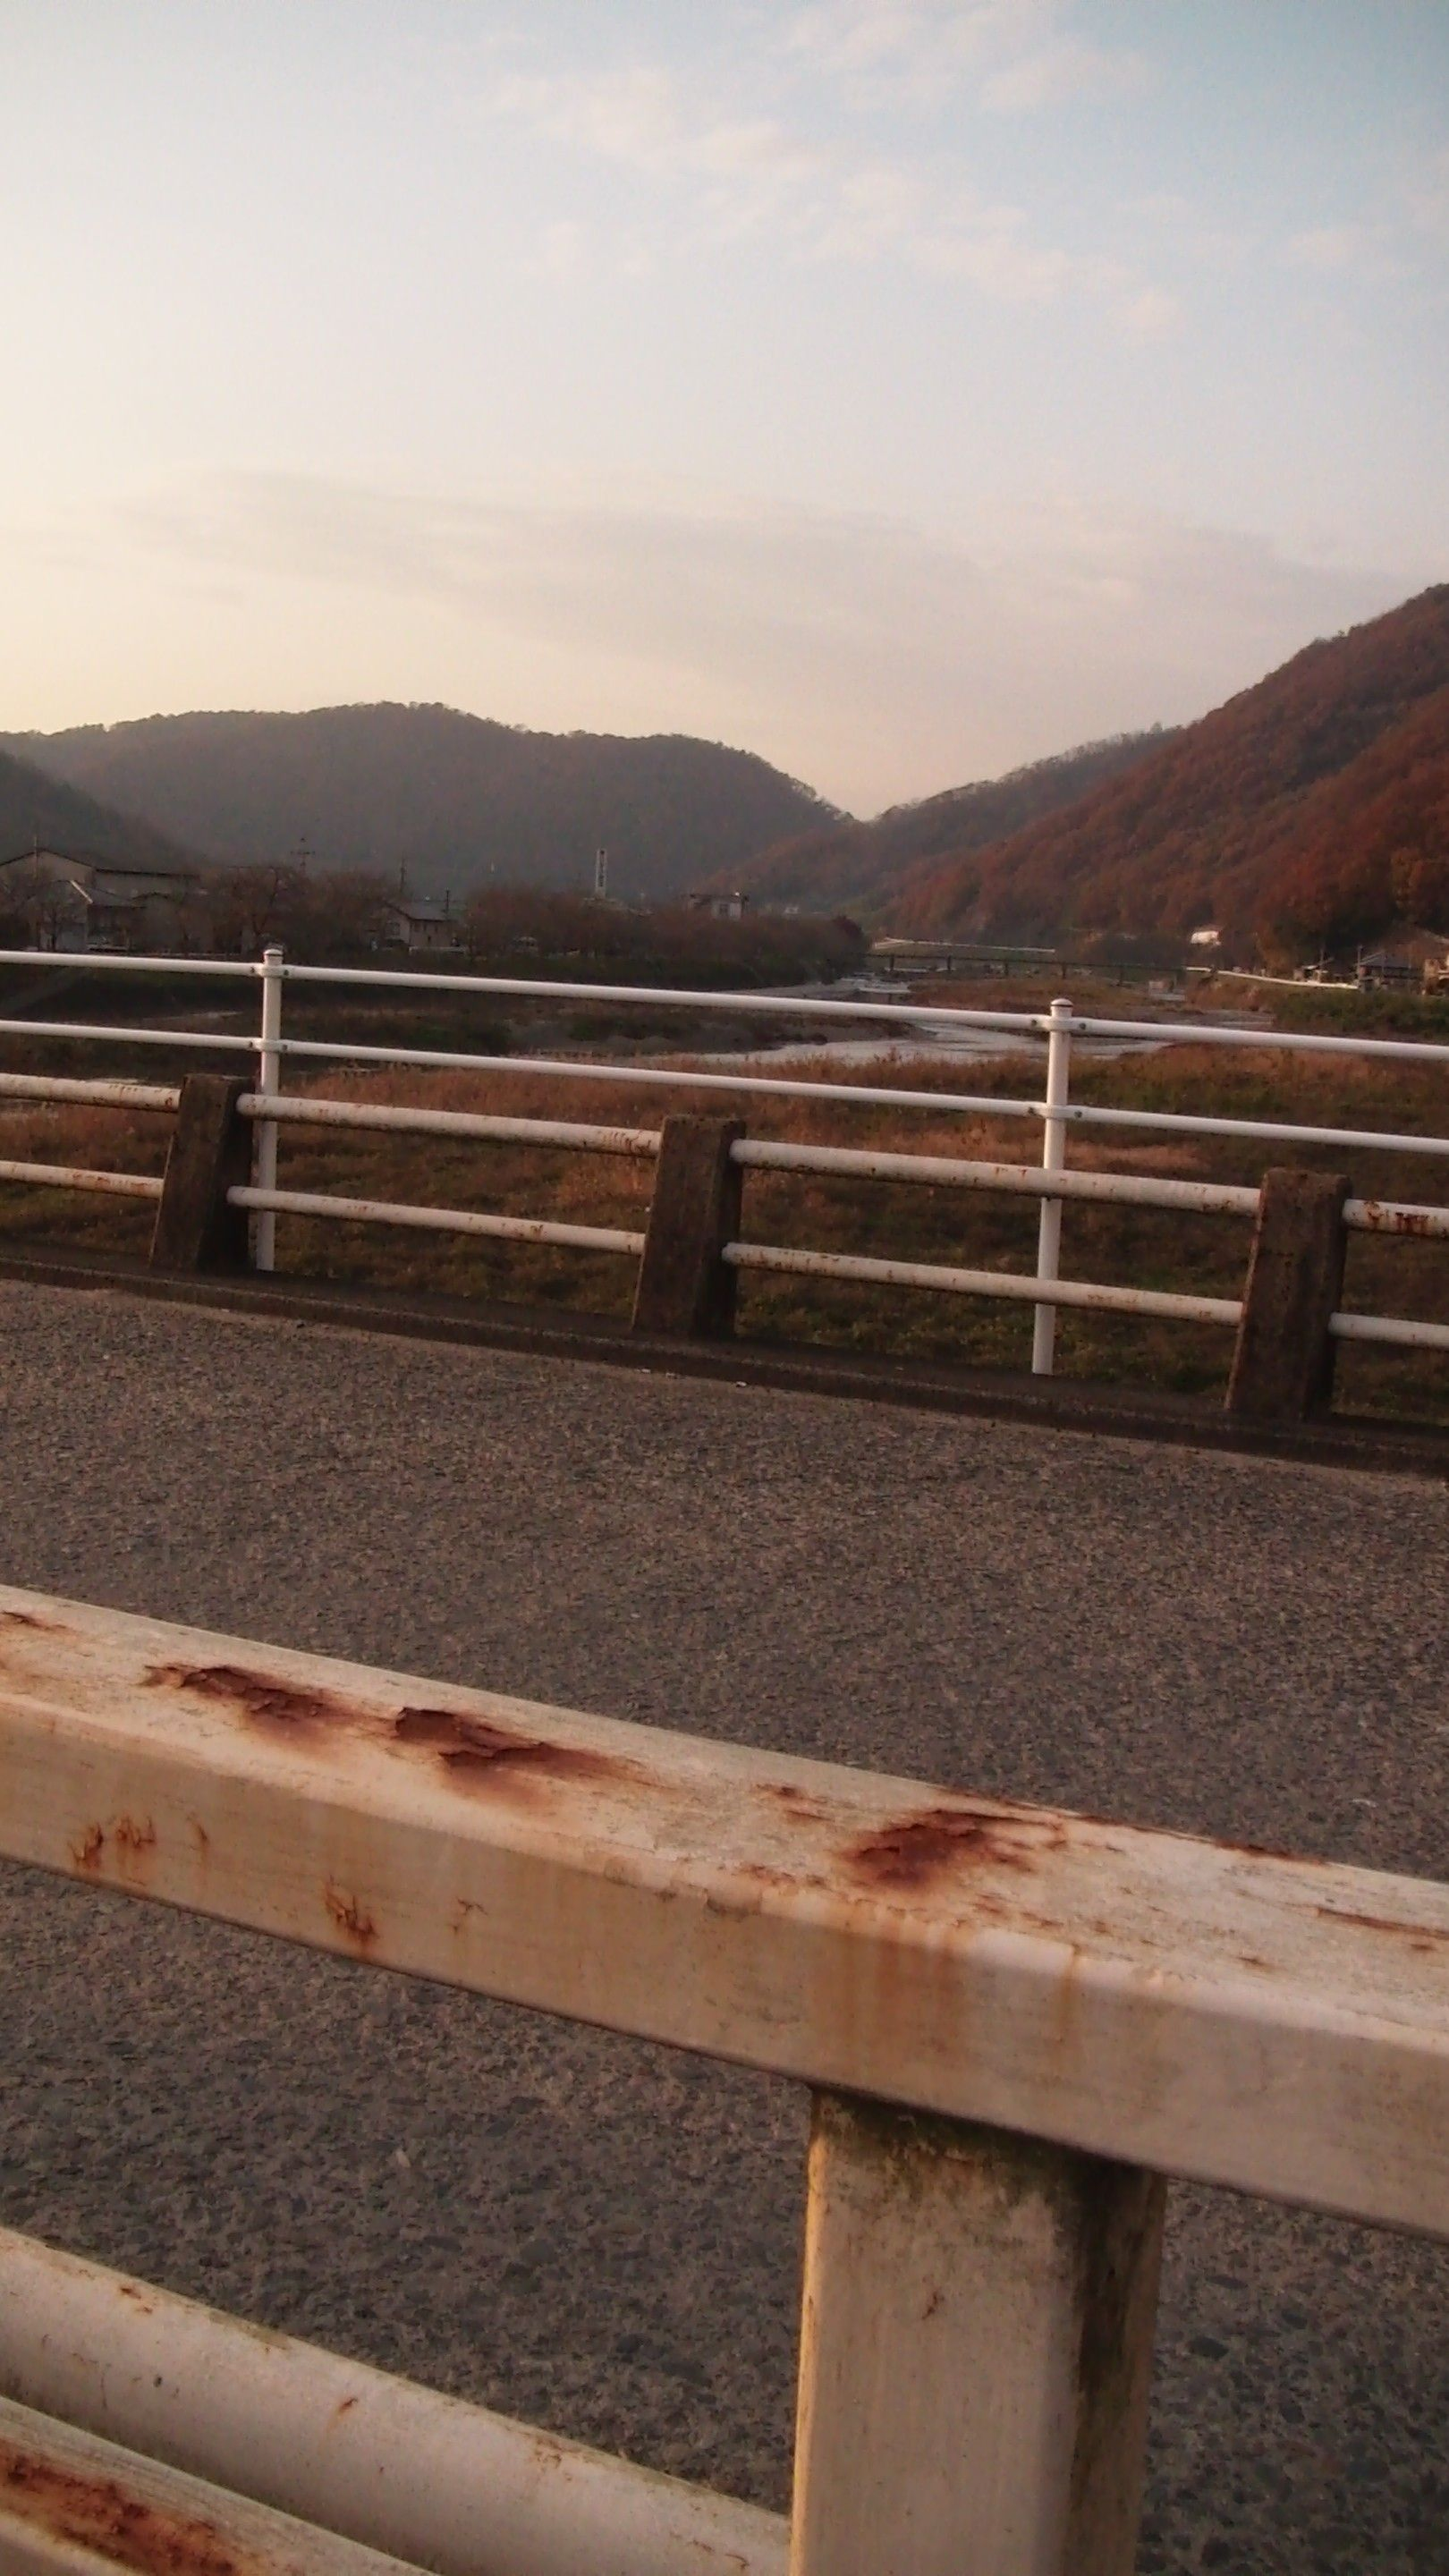 An autumn view of rural Japan. Rusty colors dominate at this time of the year.